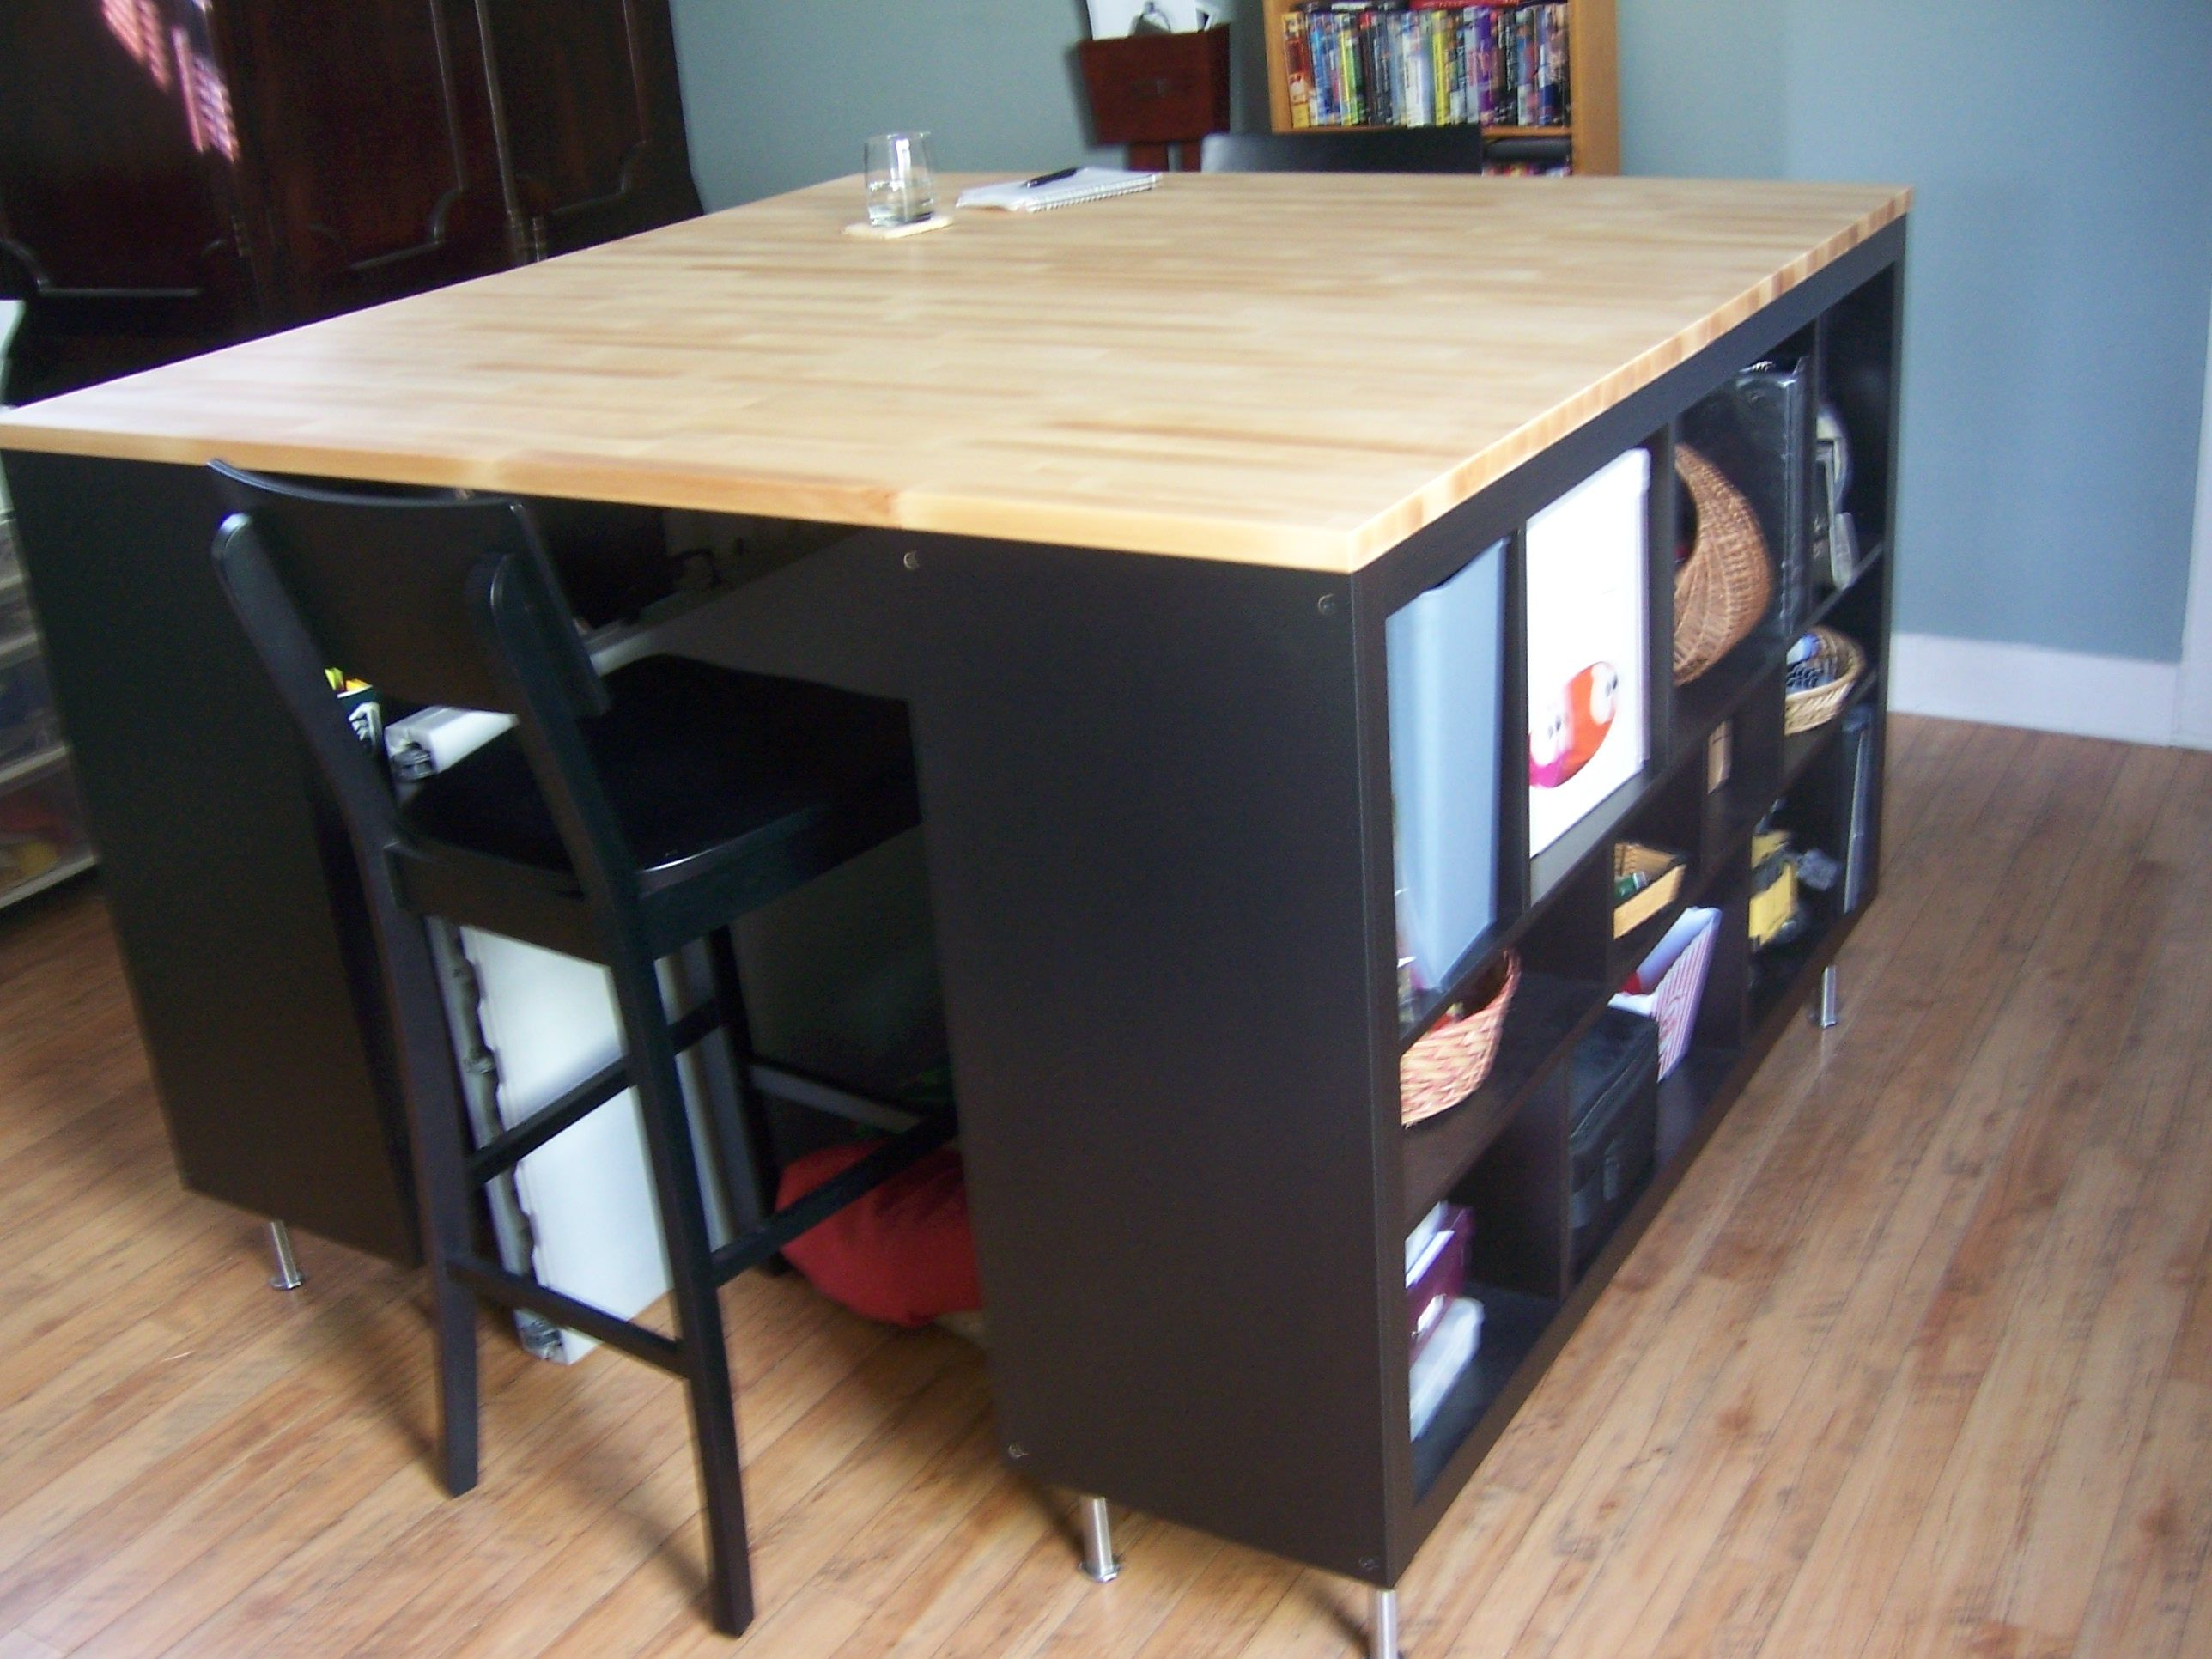 Work Tables For Home Office Tall Work Tables Google Search Craft Room Pinterest